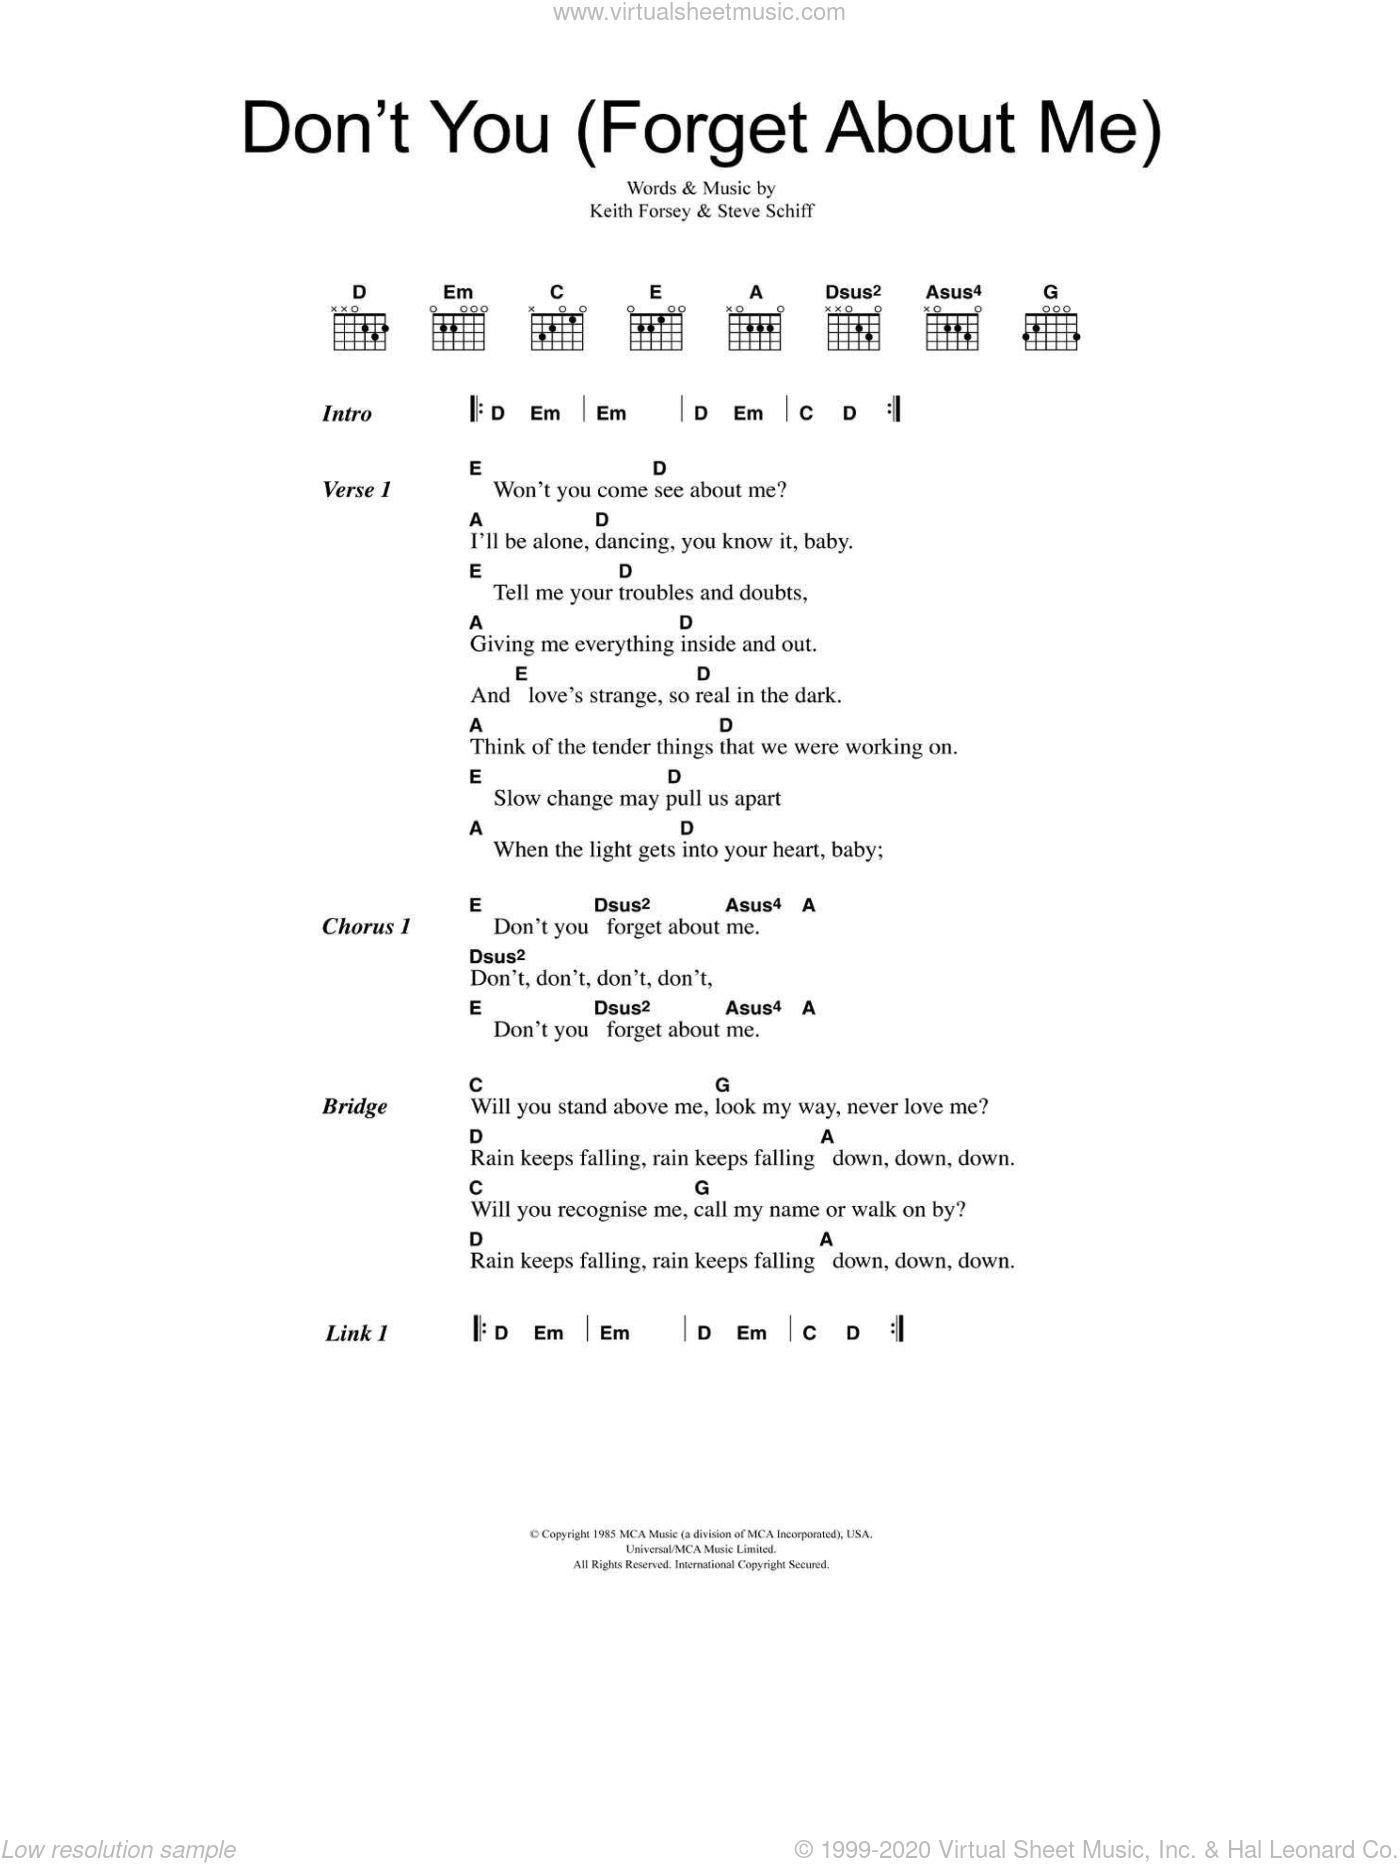 Don't You (Forget About Me) sheet music for guitar (chords) by Steve Schiff, Simple Minds and Keith Forsey. Score Image Preview.